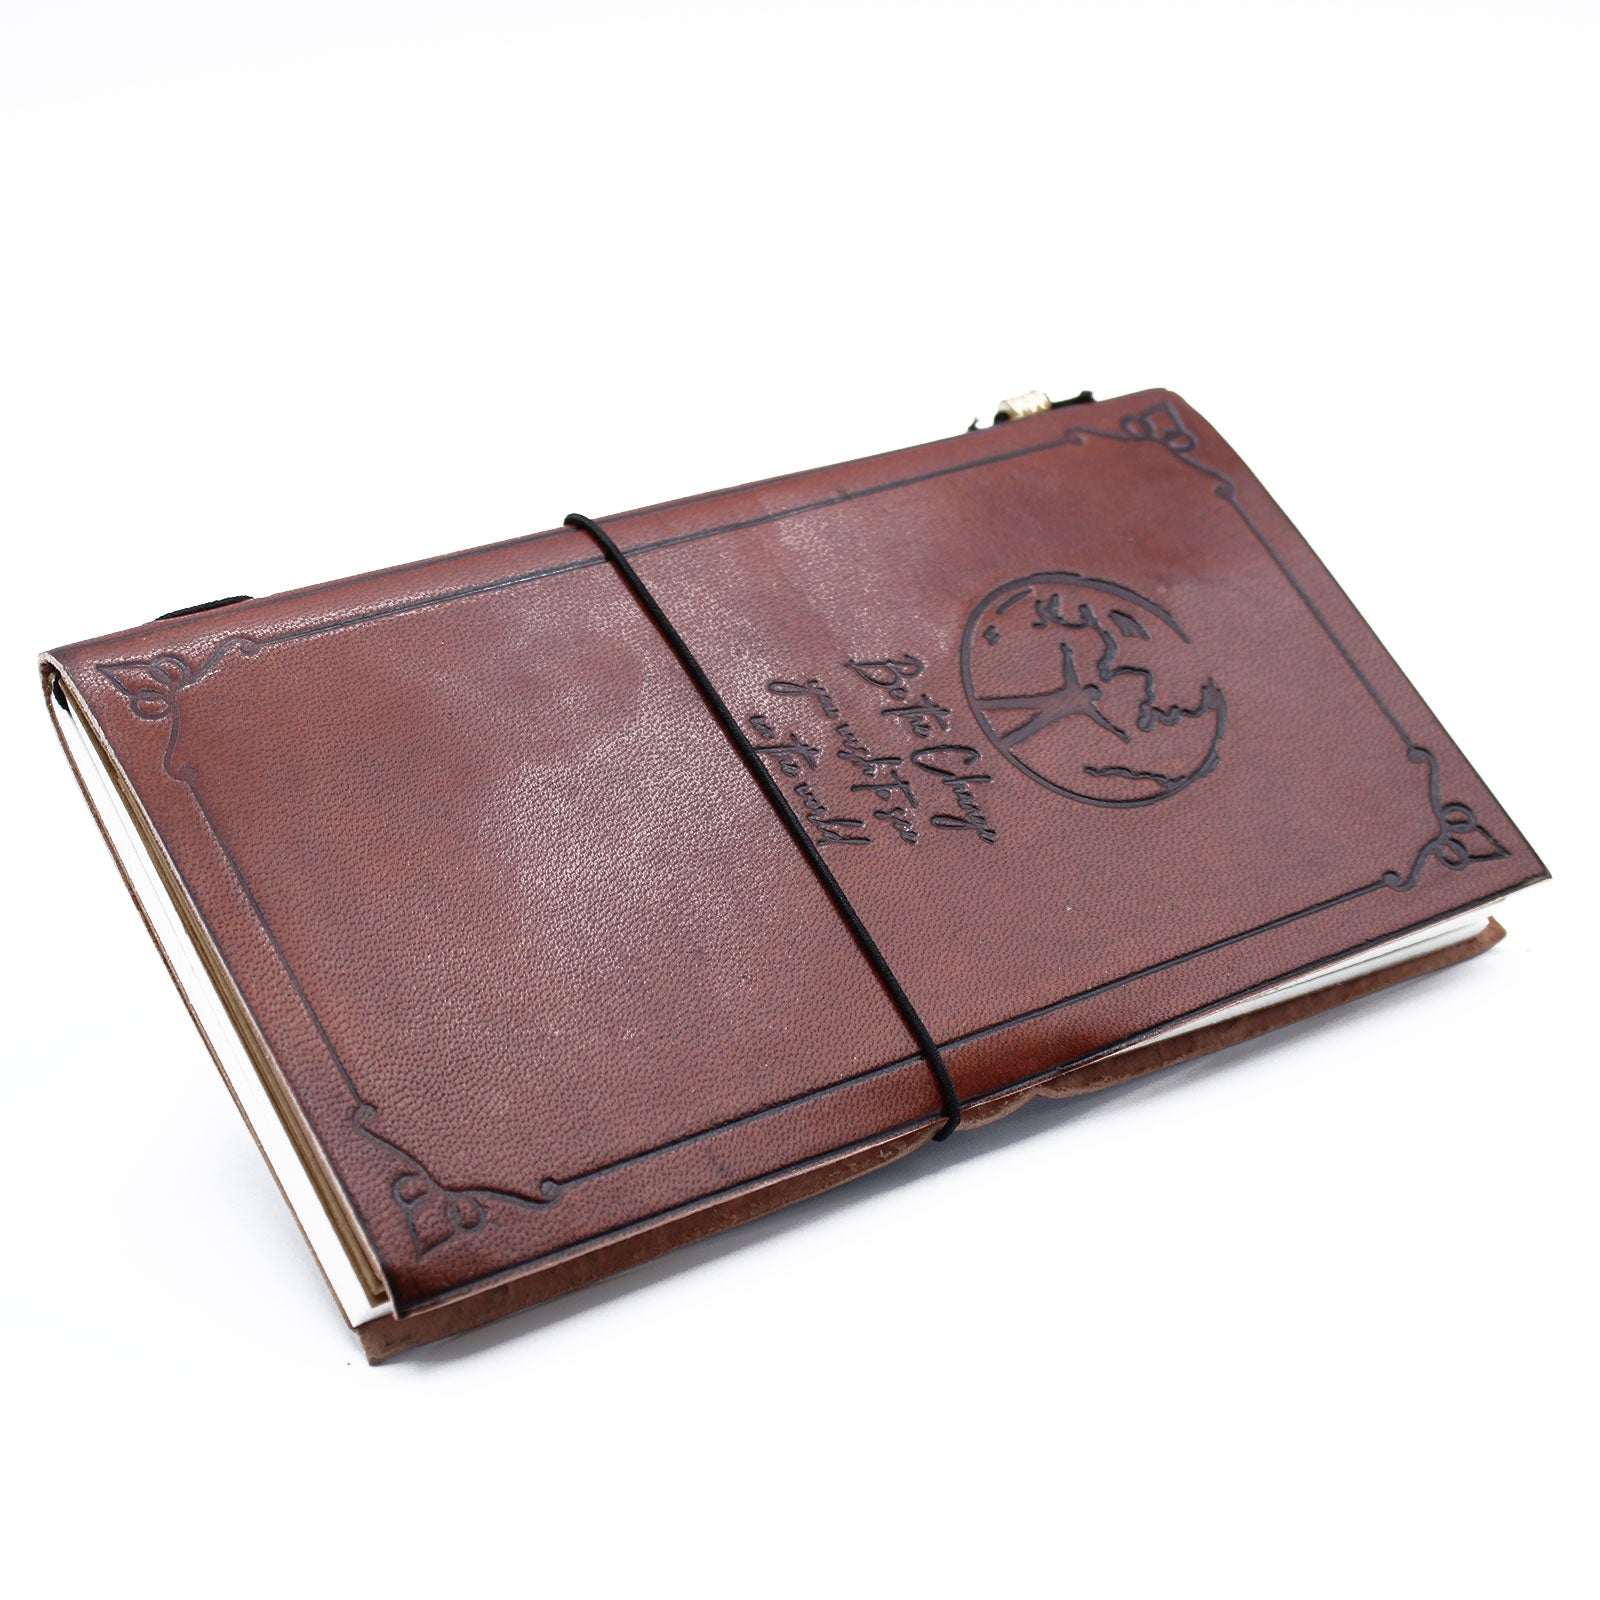 Handmade Leather Journal - Be The Change - Brown